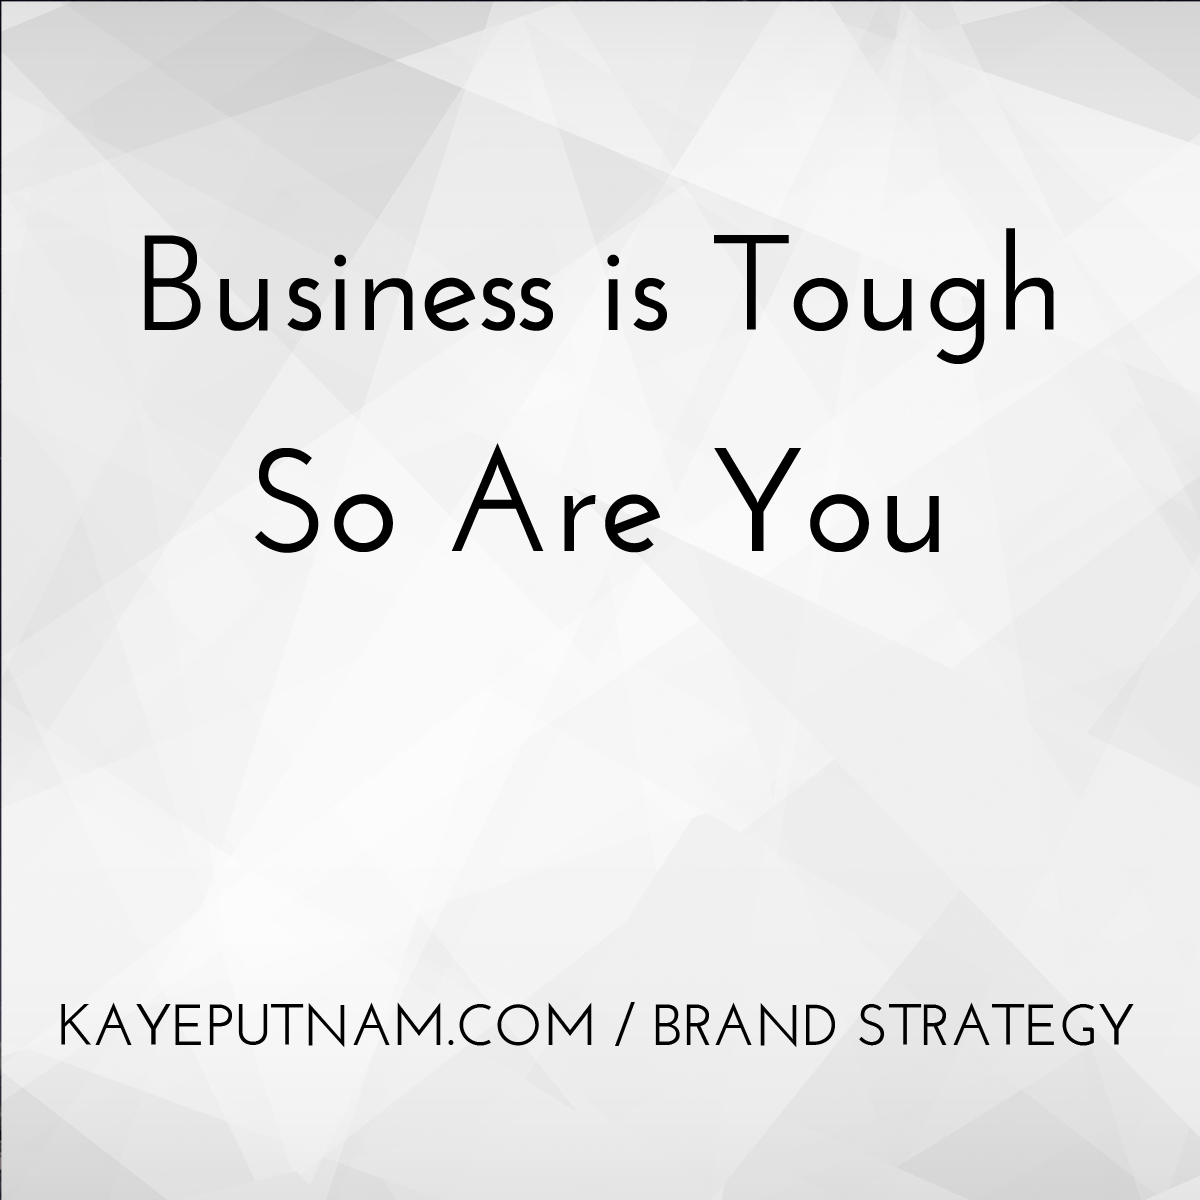 Business is tough. So are you. #InDemandBrand